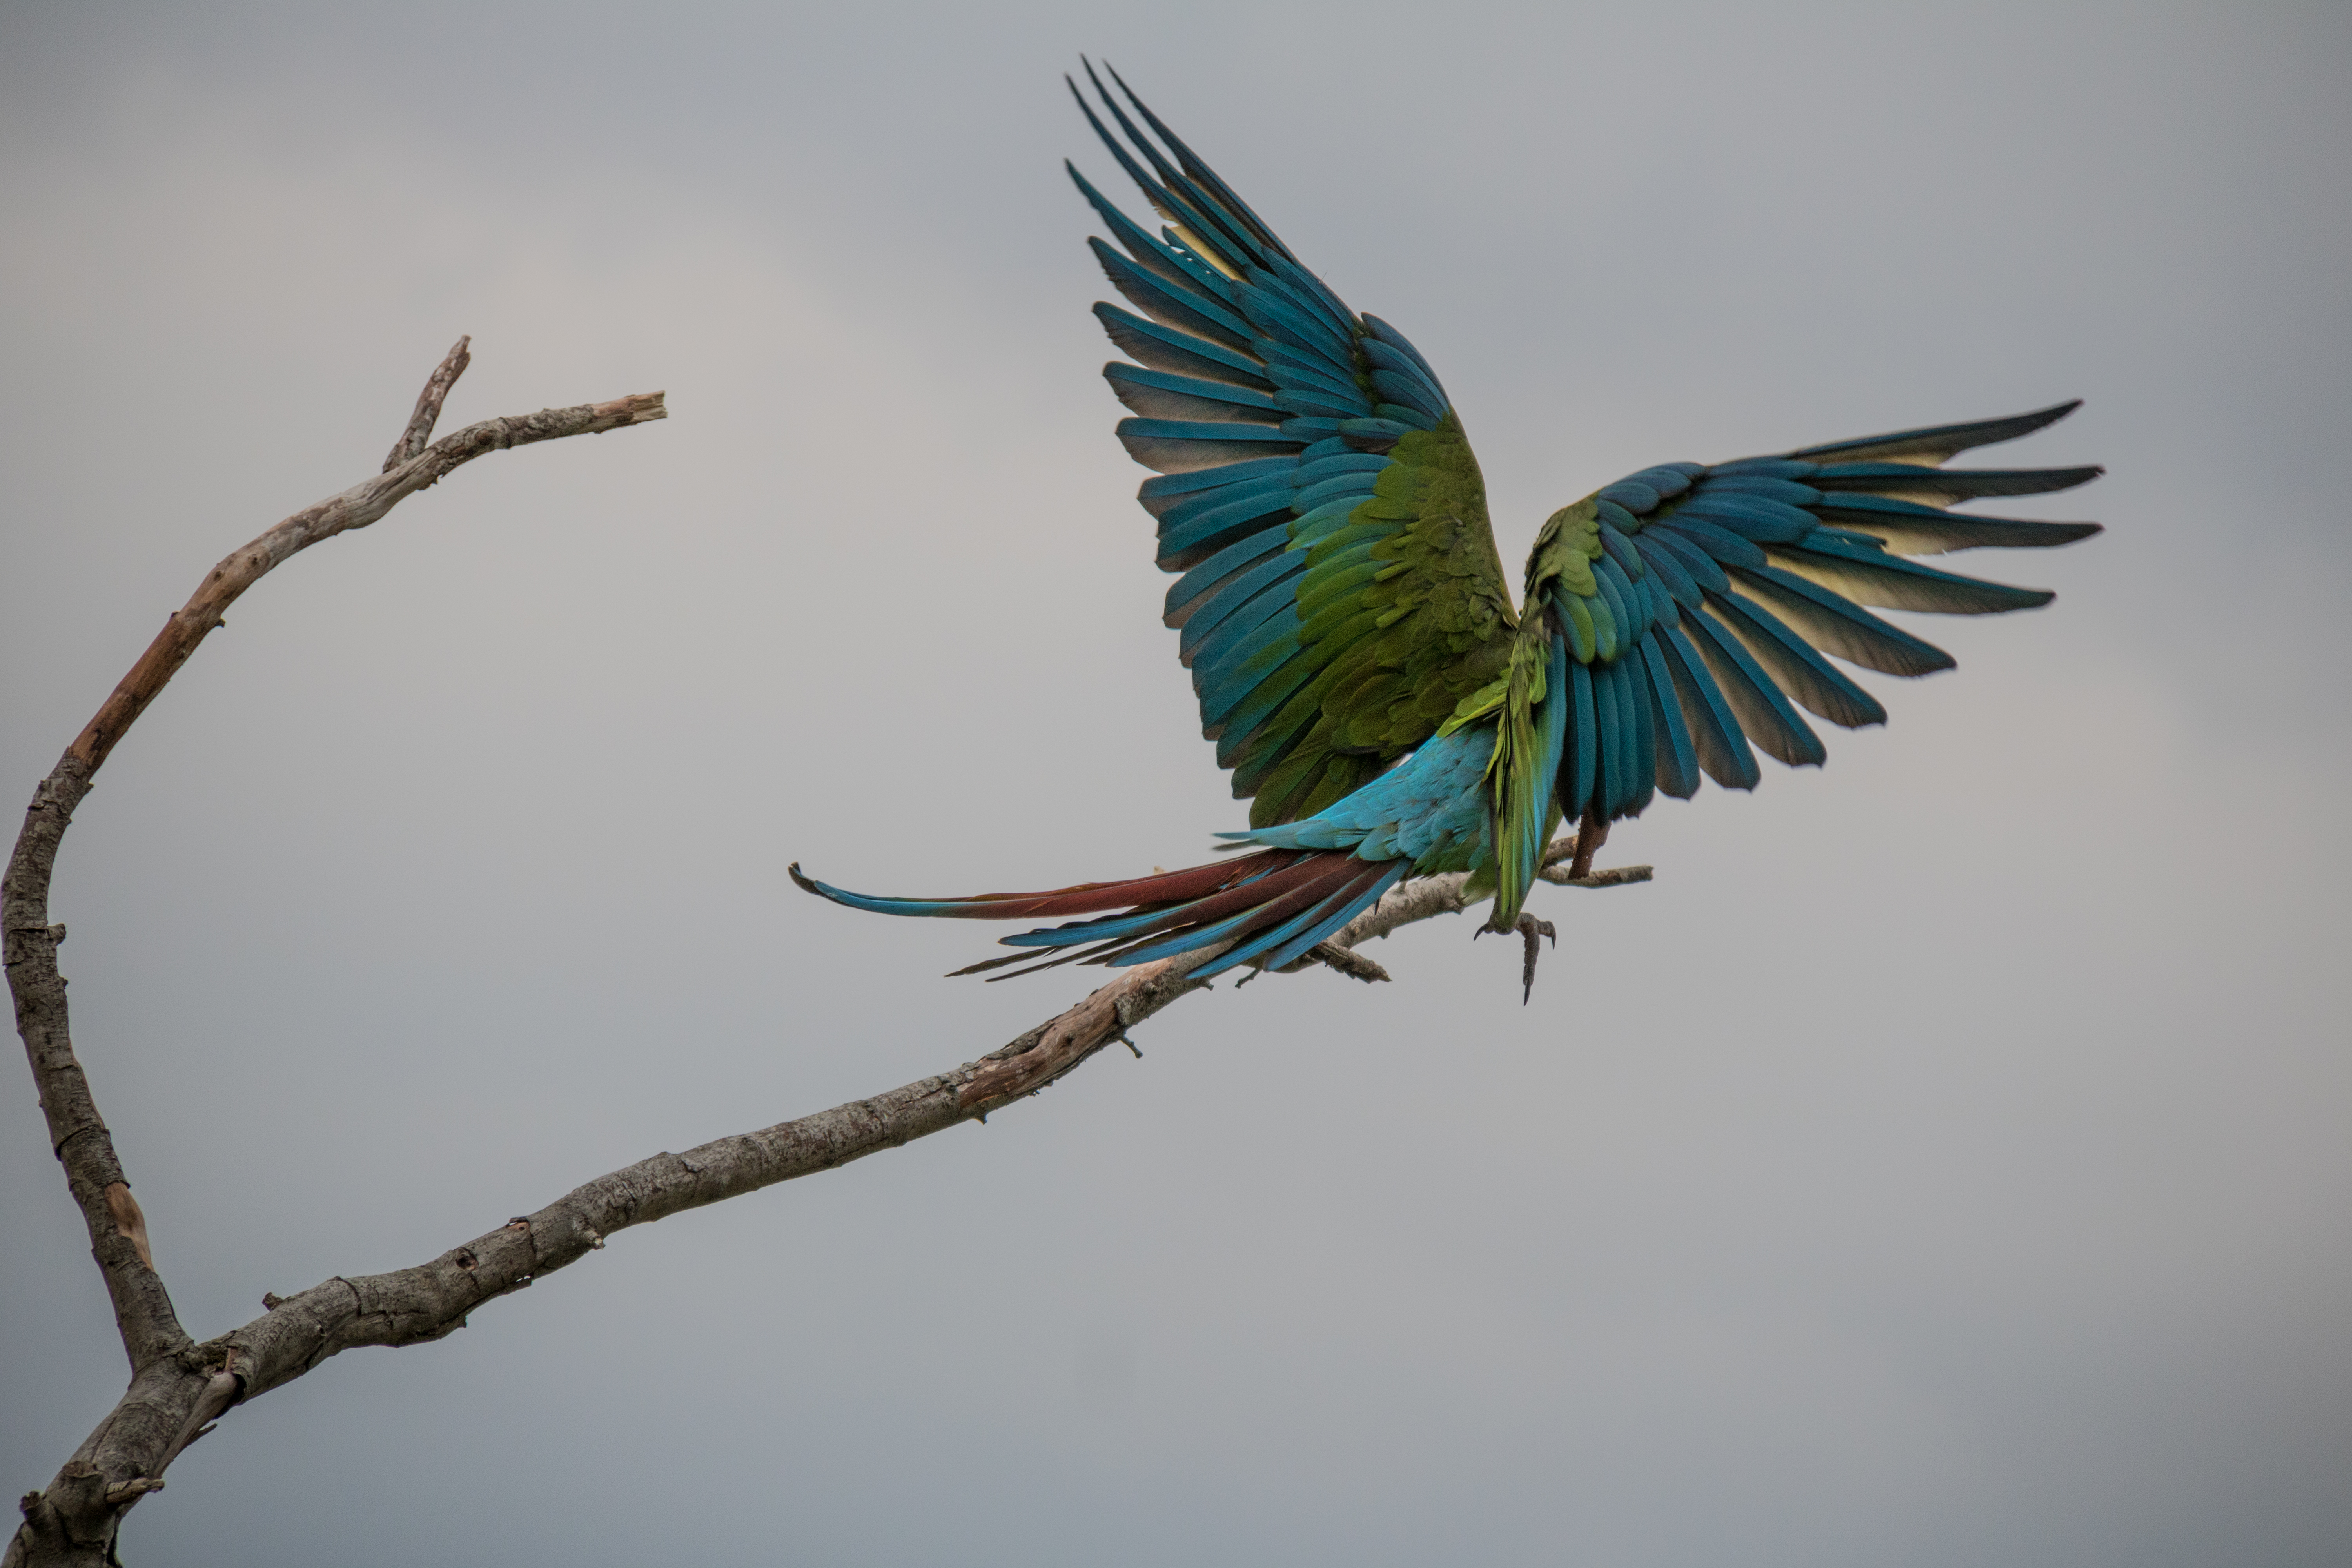 Great green macaw on a branch